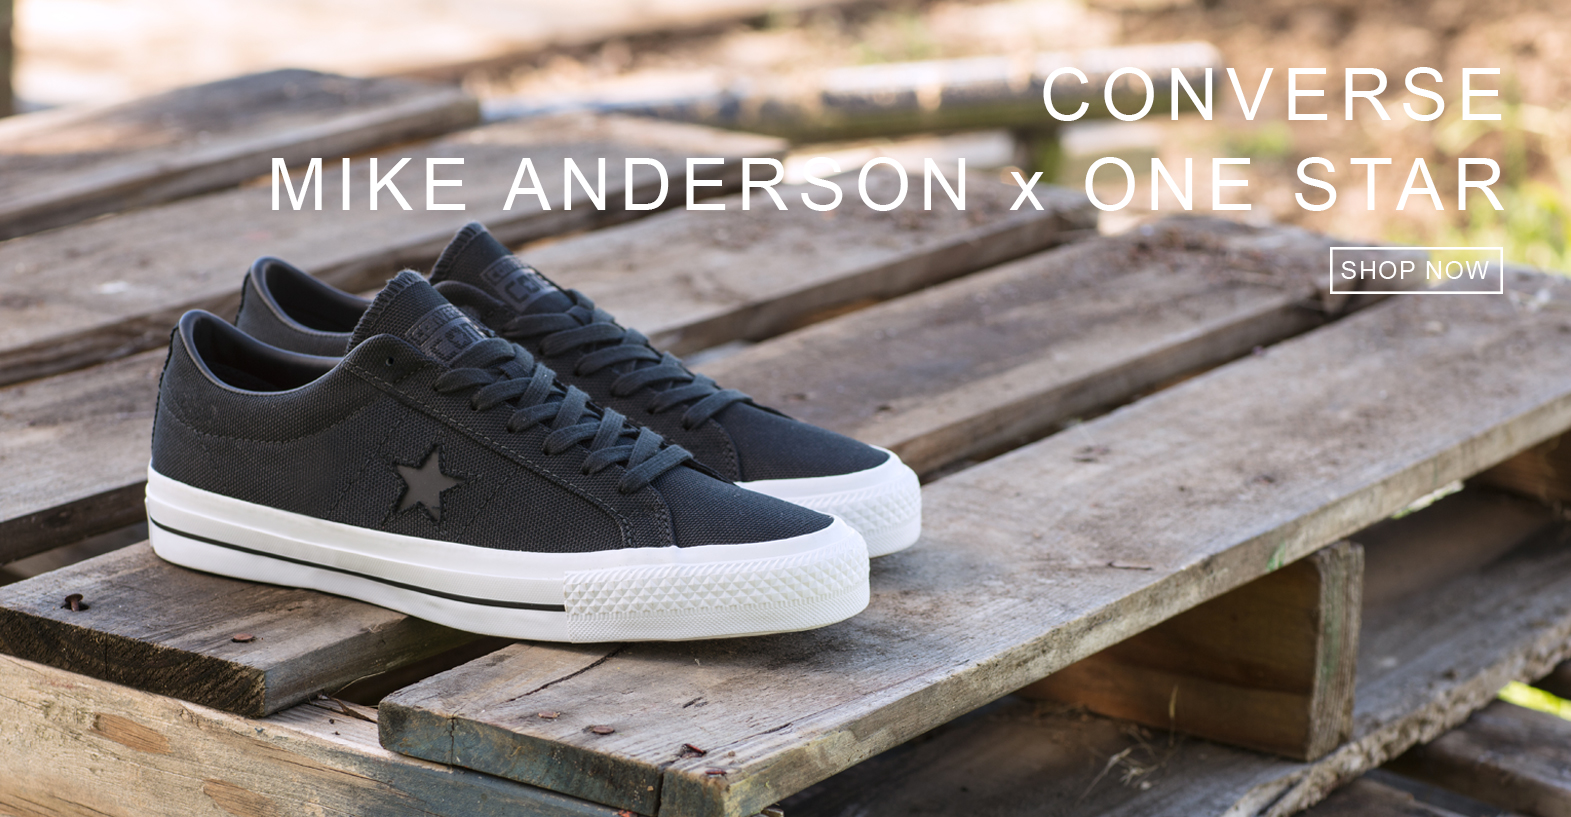 CONVERSE MIKE ANDERSON SHOP NOW